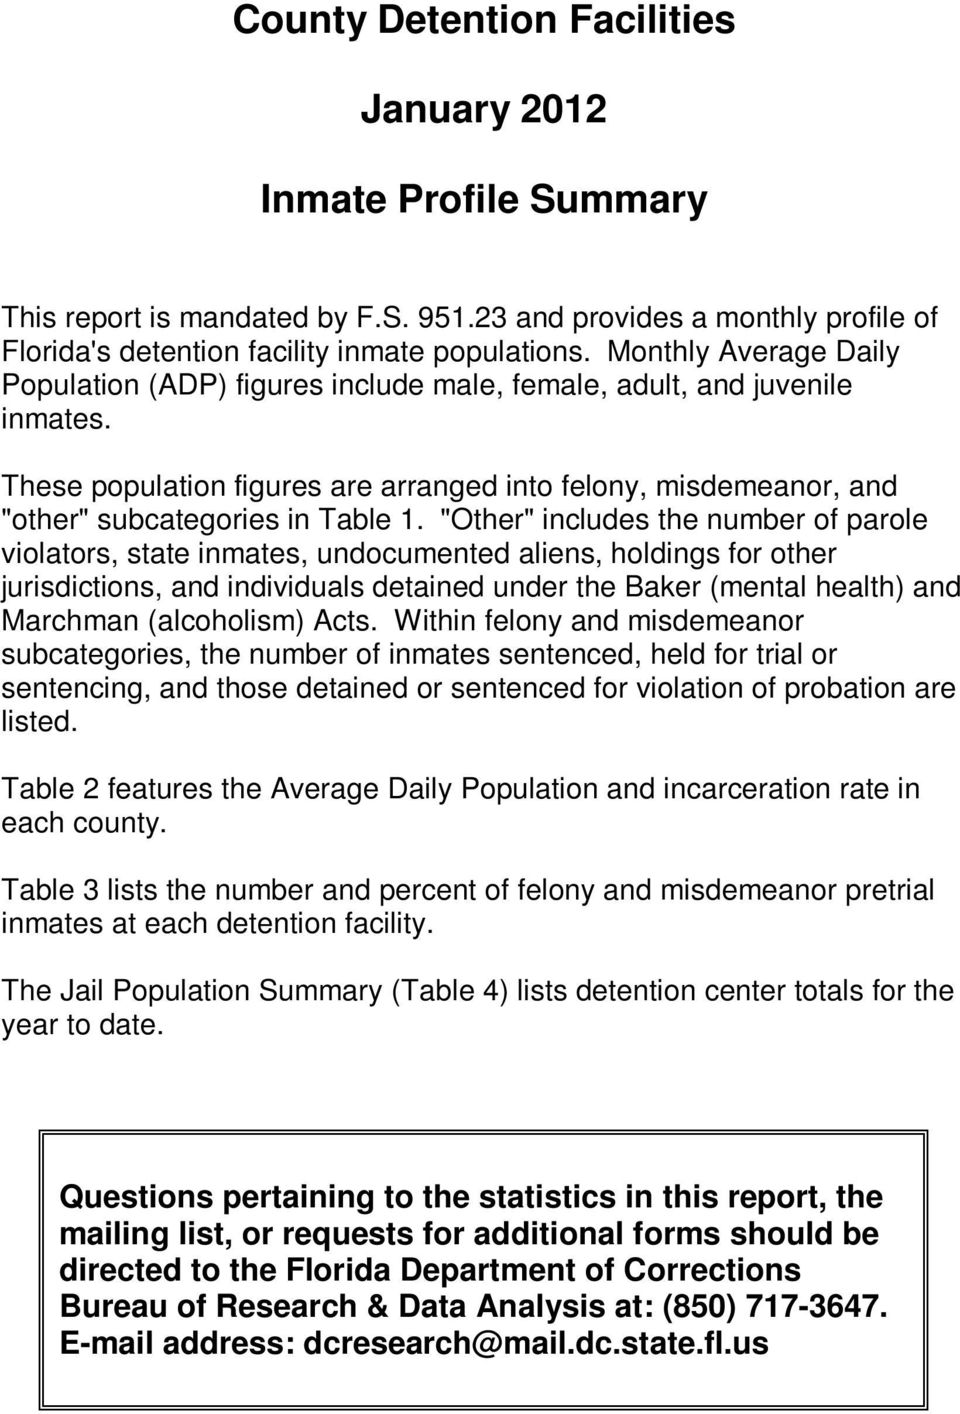 Florida County Detention Facilities Average Inmate